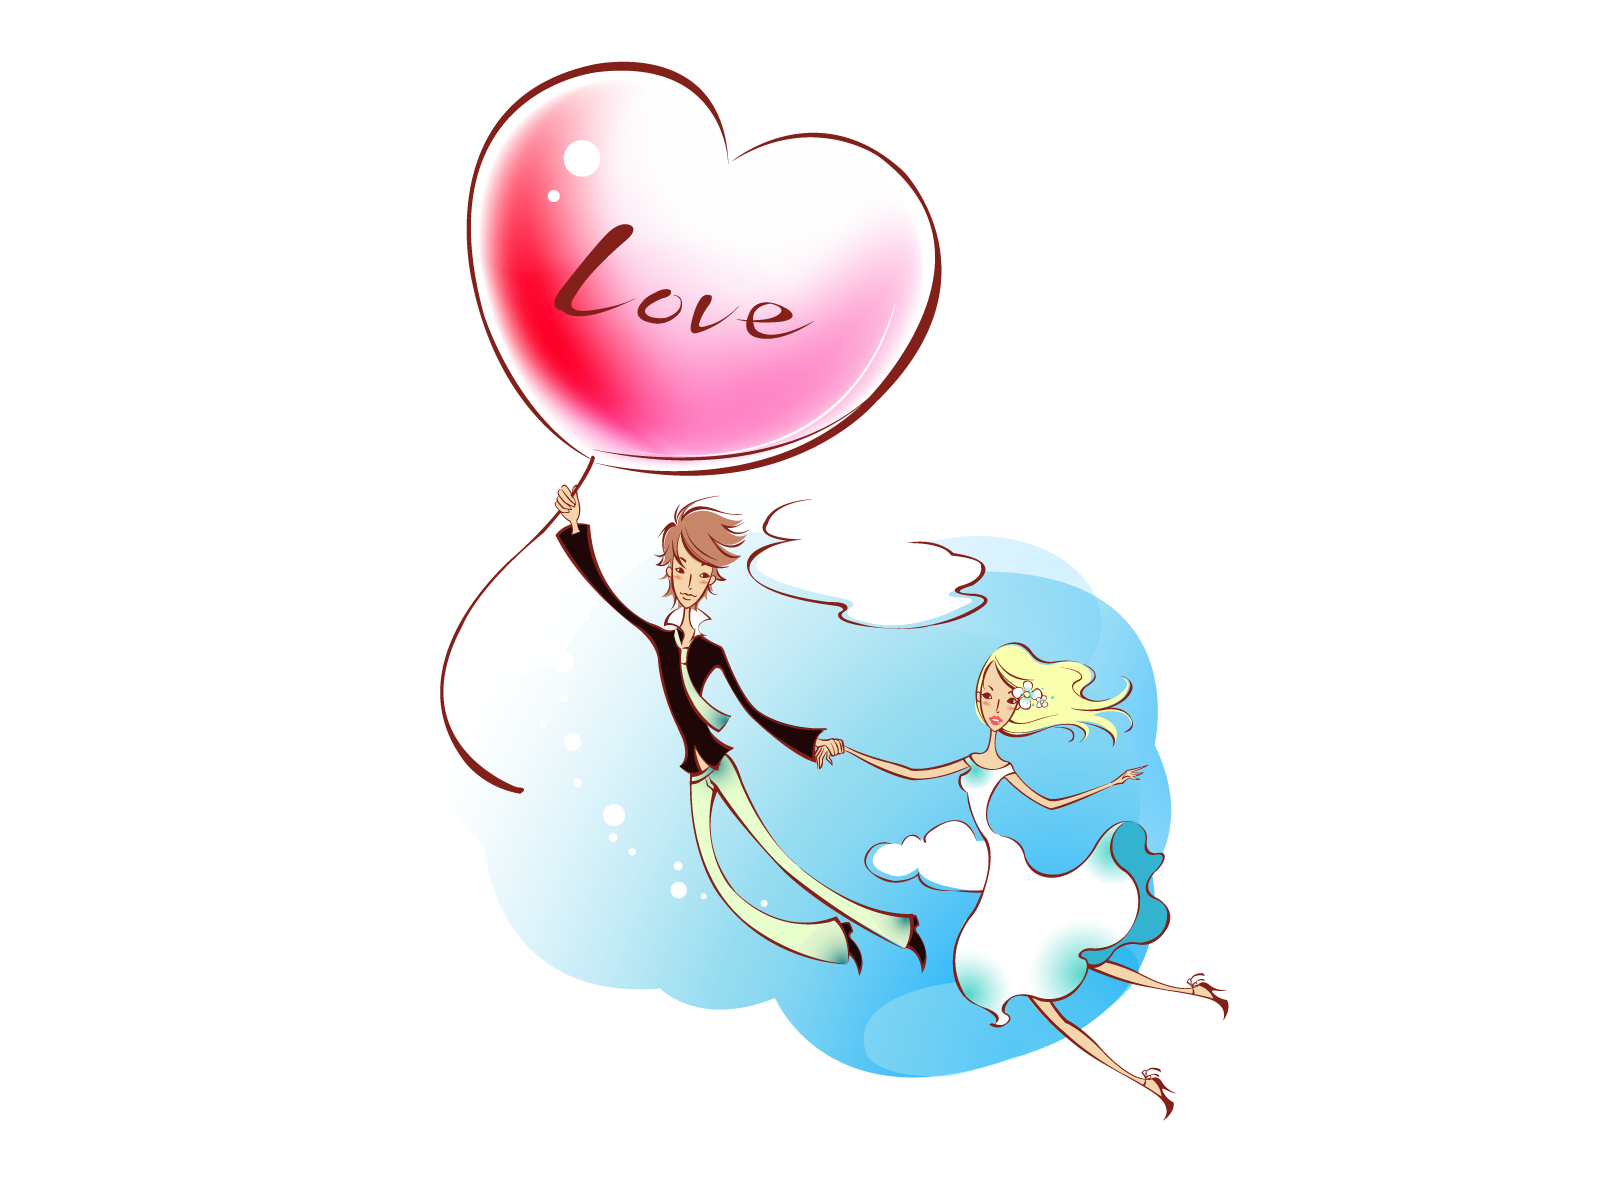 Romantic Valentine's Day illustration class 6753